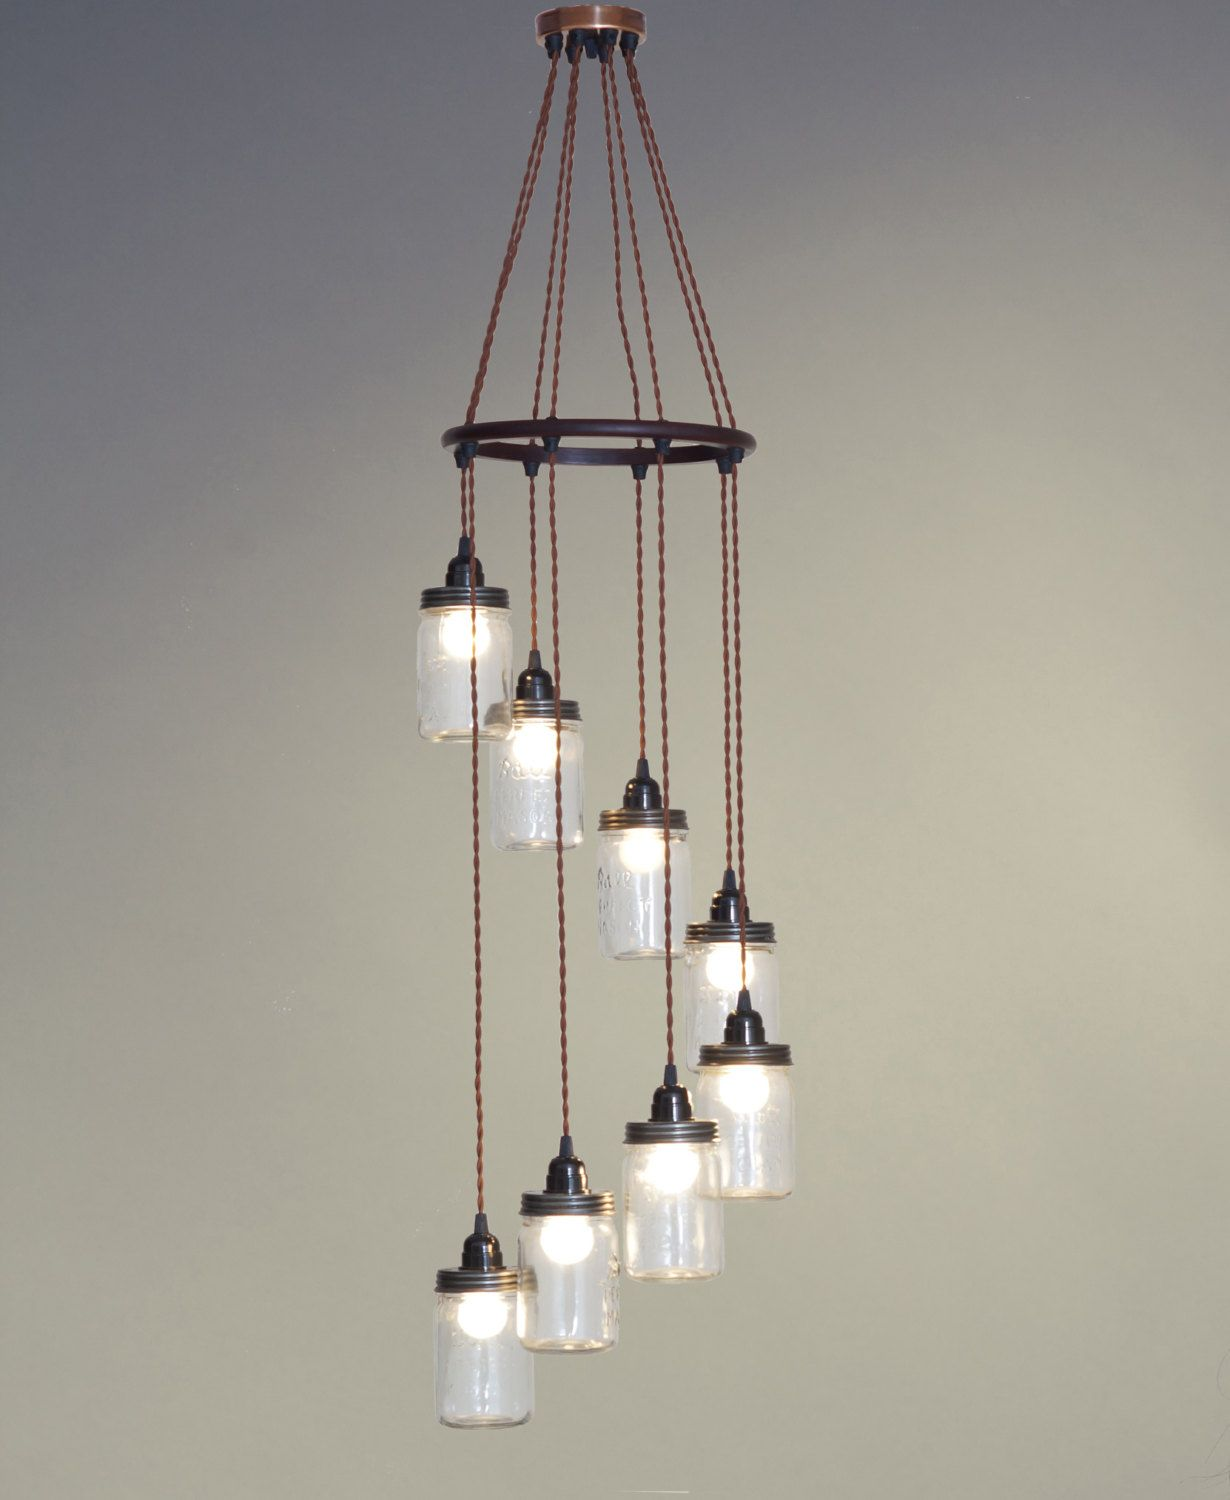 industrial lighting chandelier. 20 Unconventional Handmade Industrial Lighting Designs You Can DIY Chandelier D